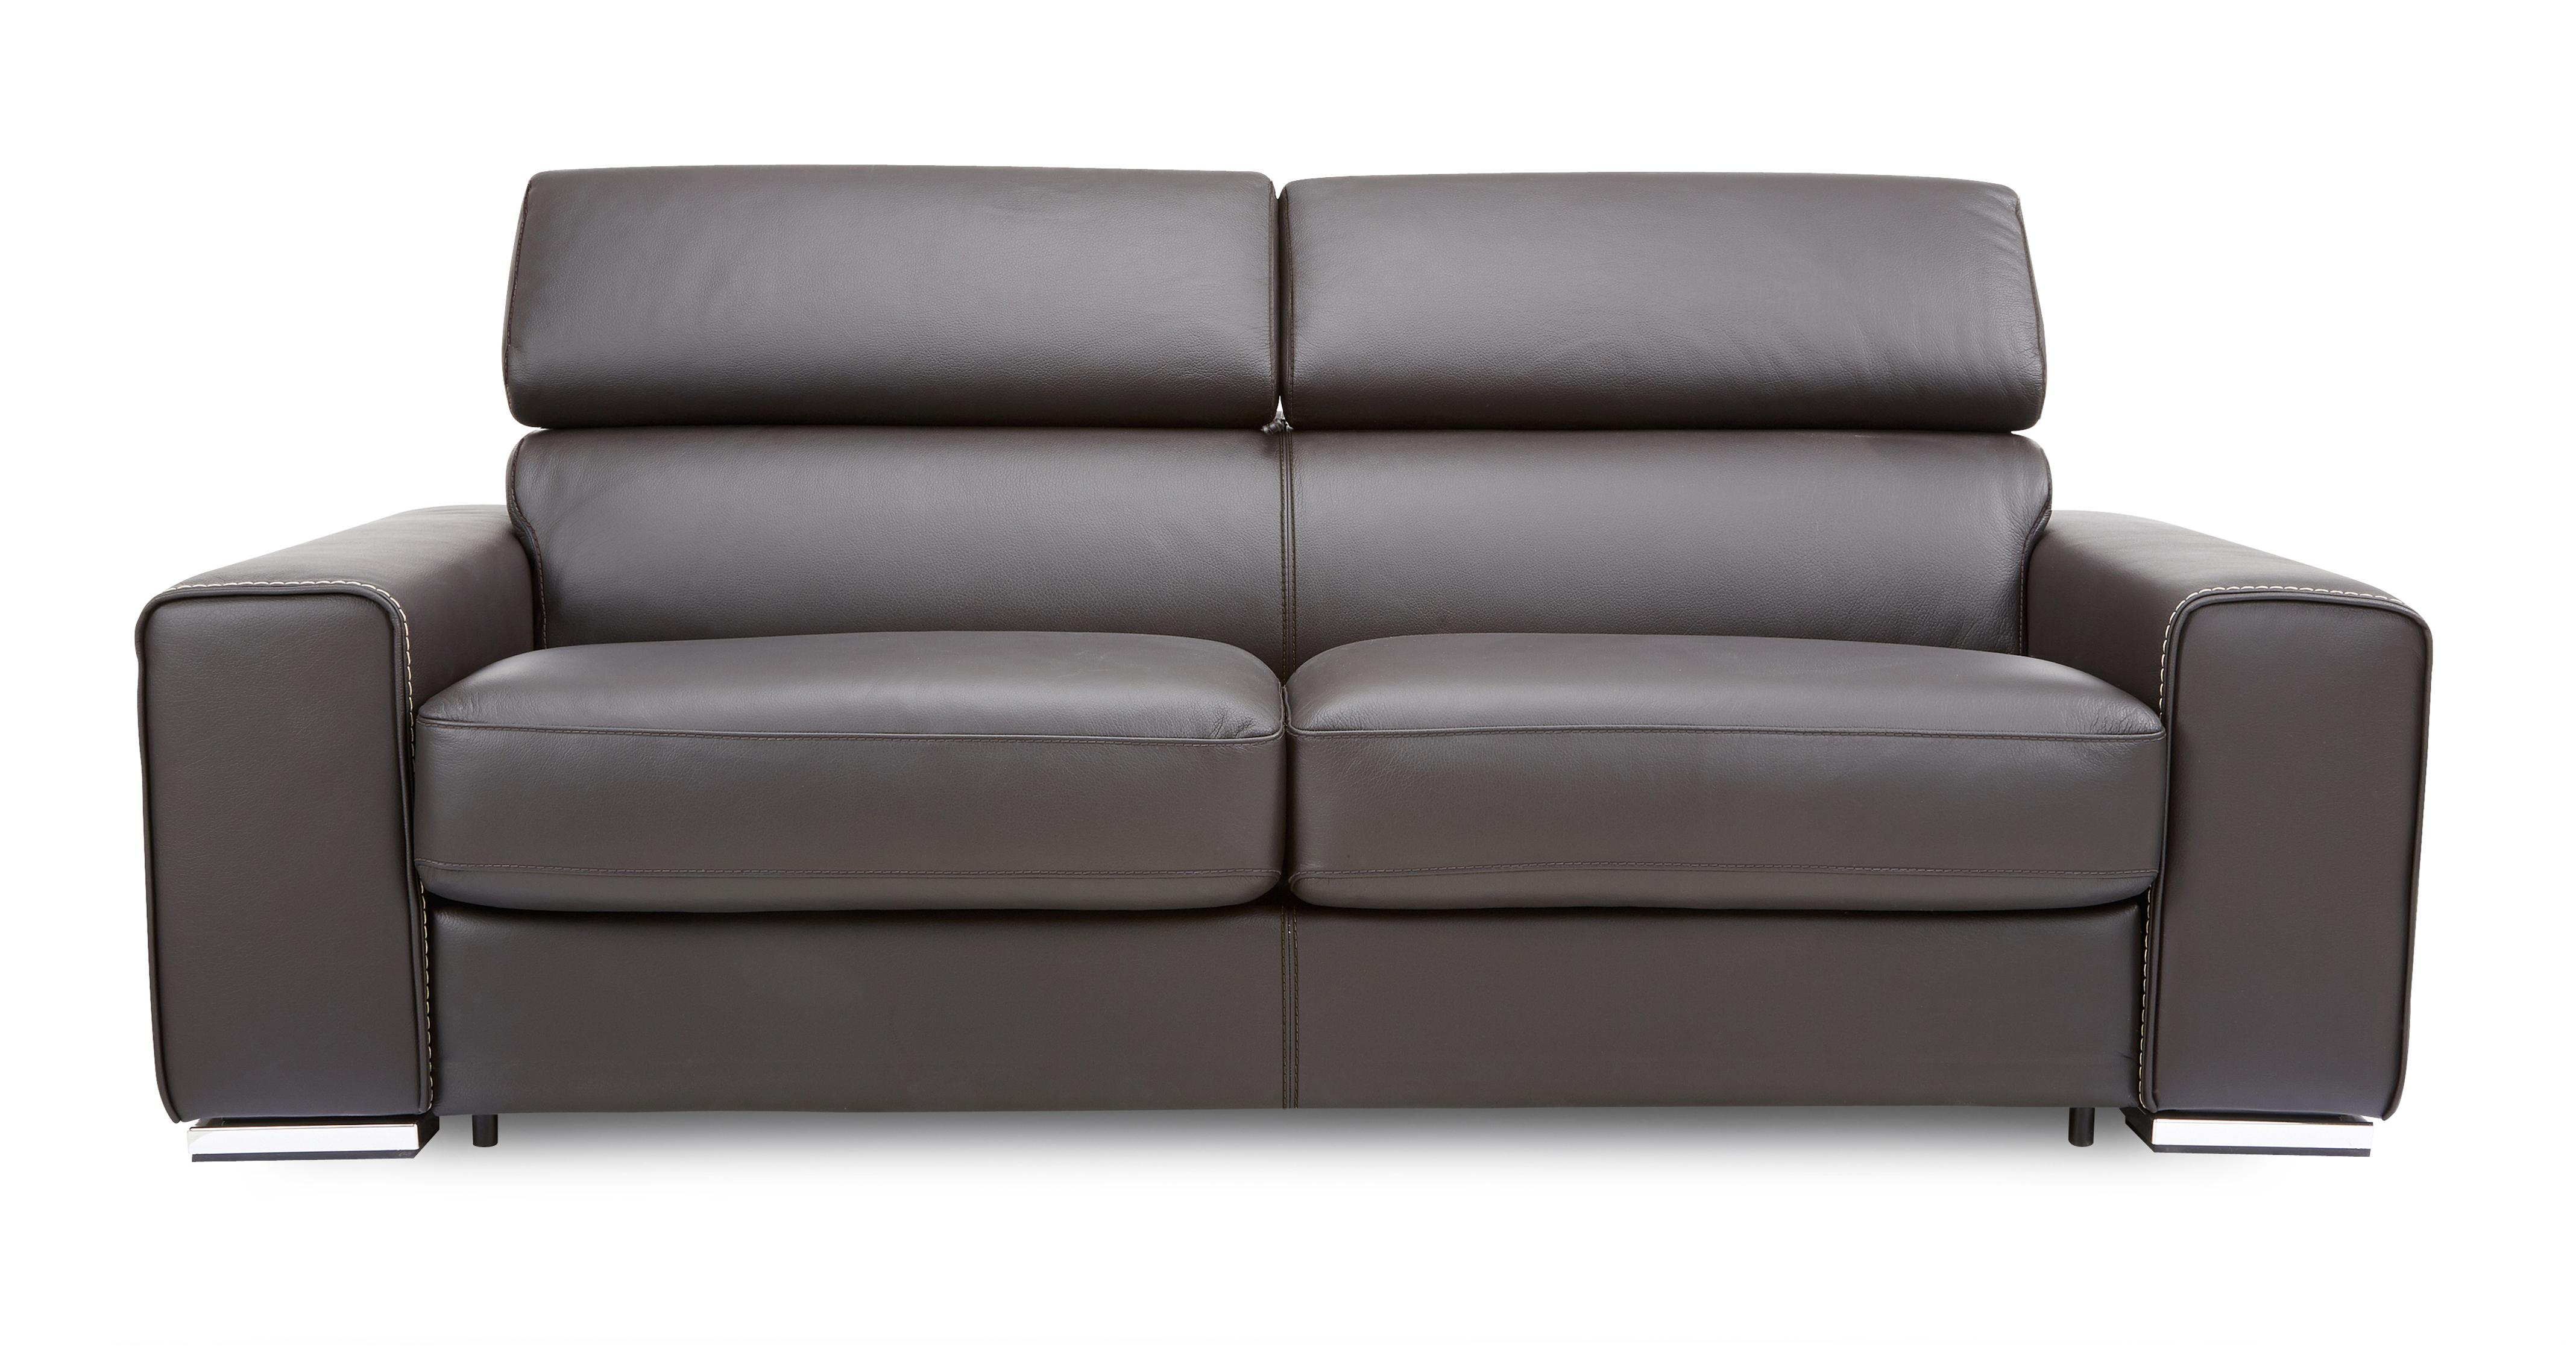 Kalamos 3 Seater Sofa Bed Sierra Contrast Dfs Ireland